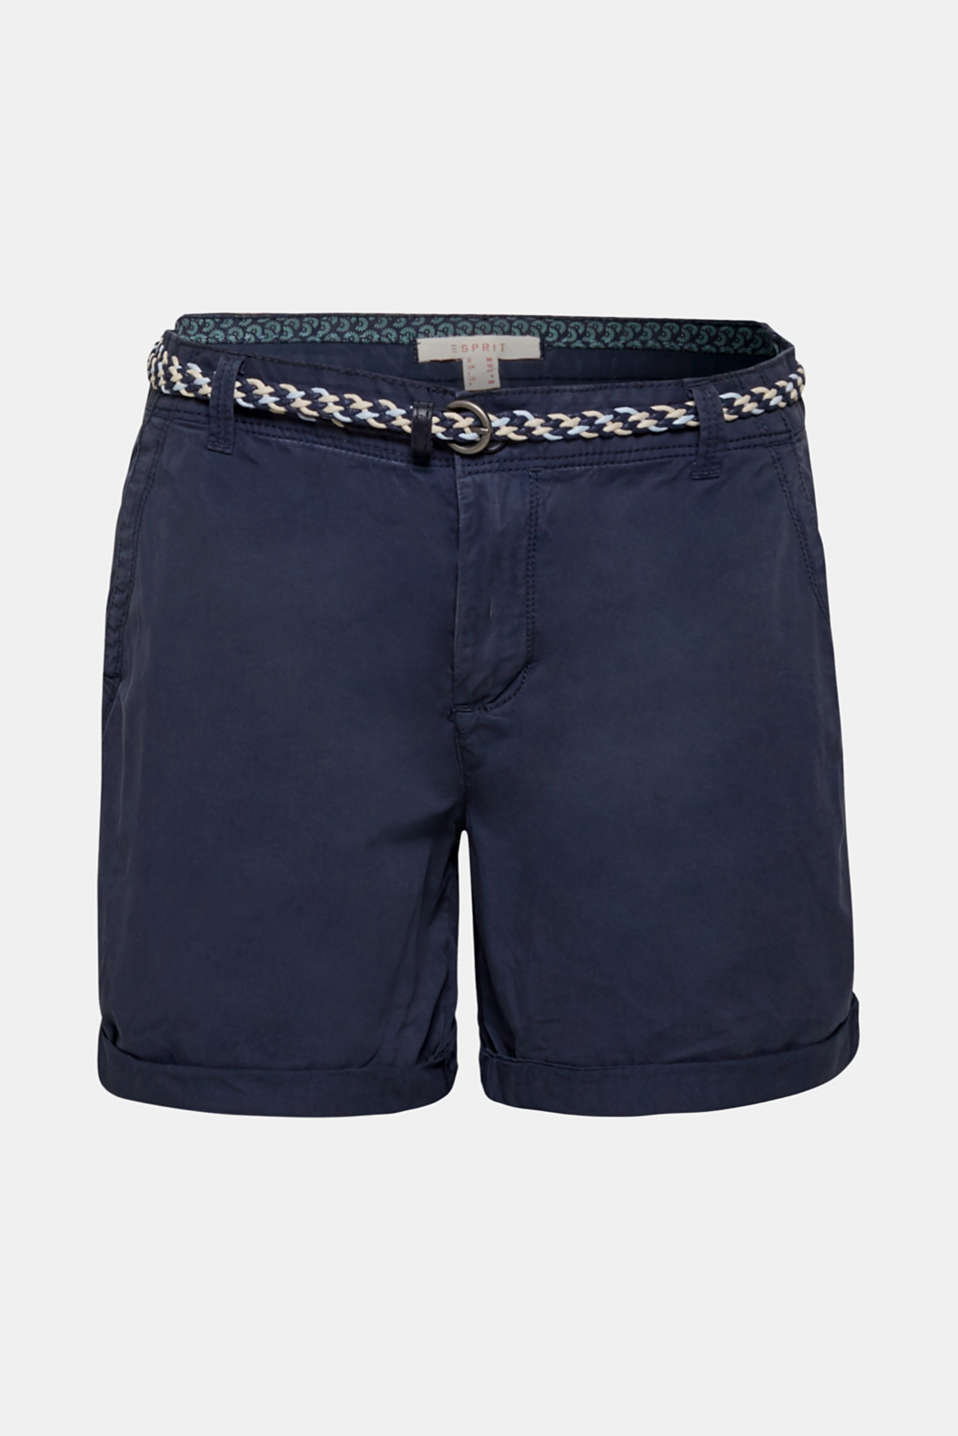 Shorts in a garment-washed look, 100% cotton, NAVY, detail image number 7